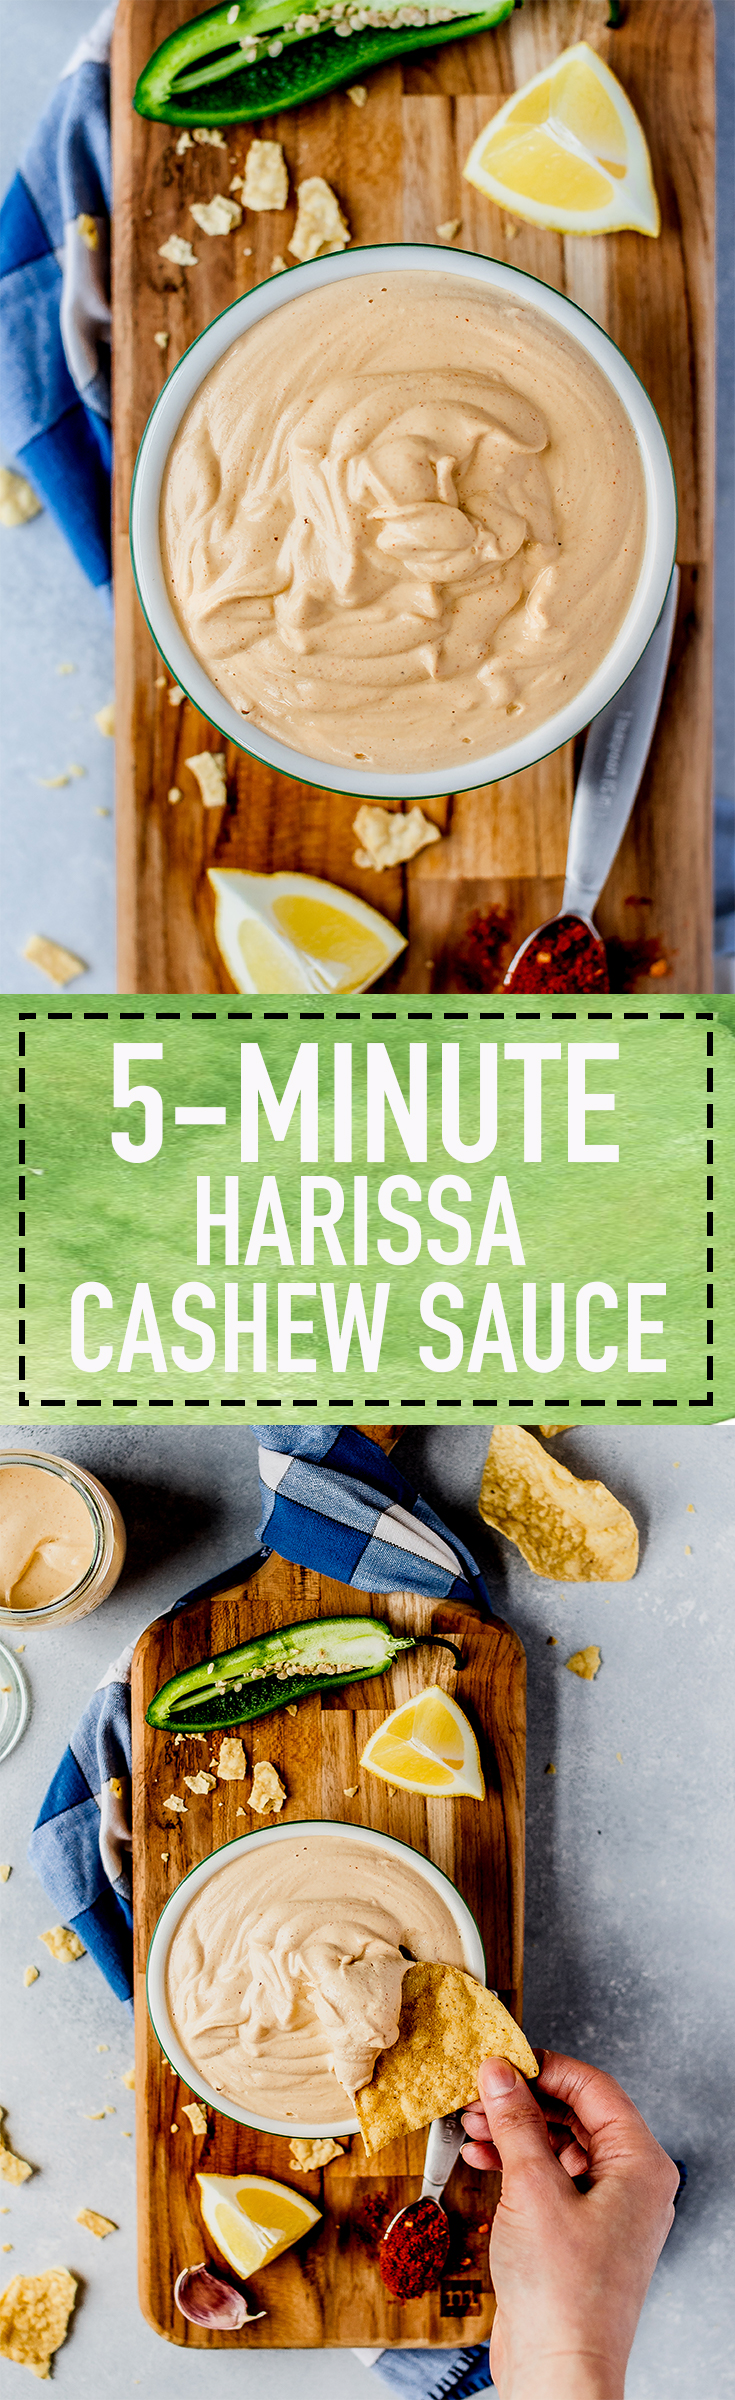 5-Minute Harissa Cashew Sauce that requires 7 ingredients! The perfect, creamy sauce for chips, or for adding to tacos, wraps, and more! #dip #vegan #cashewsauce